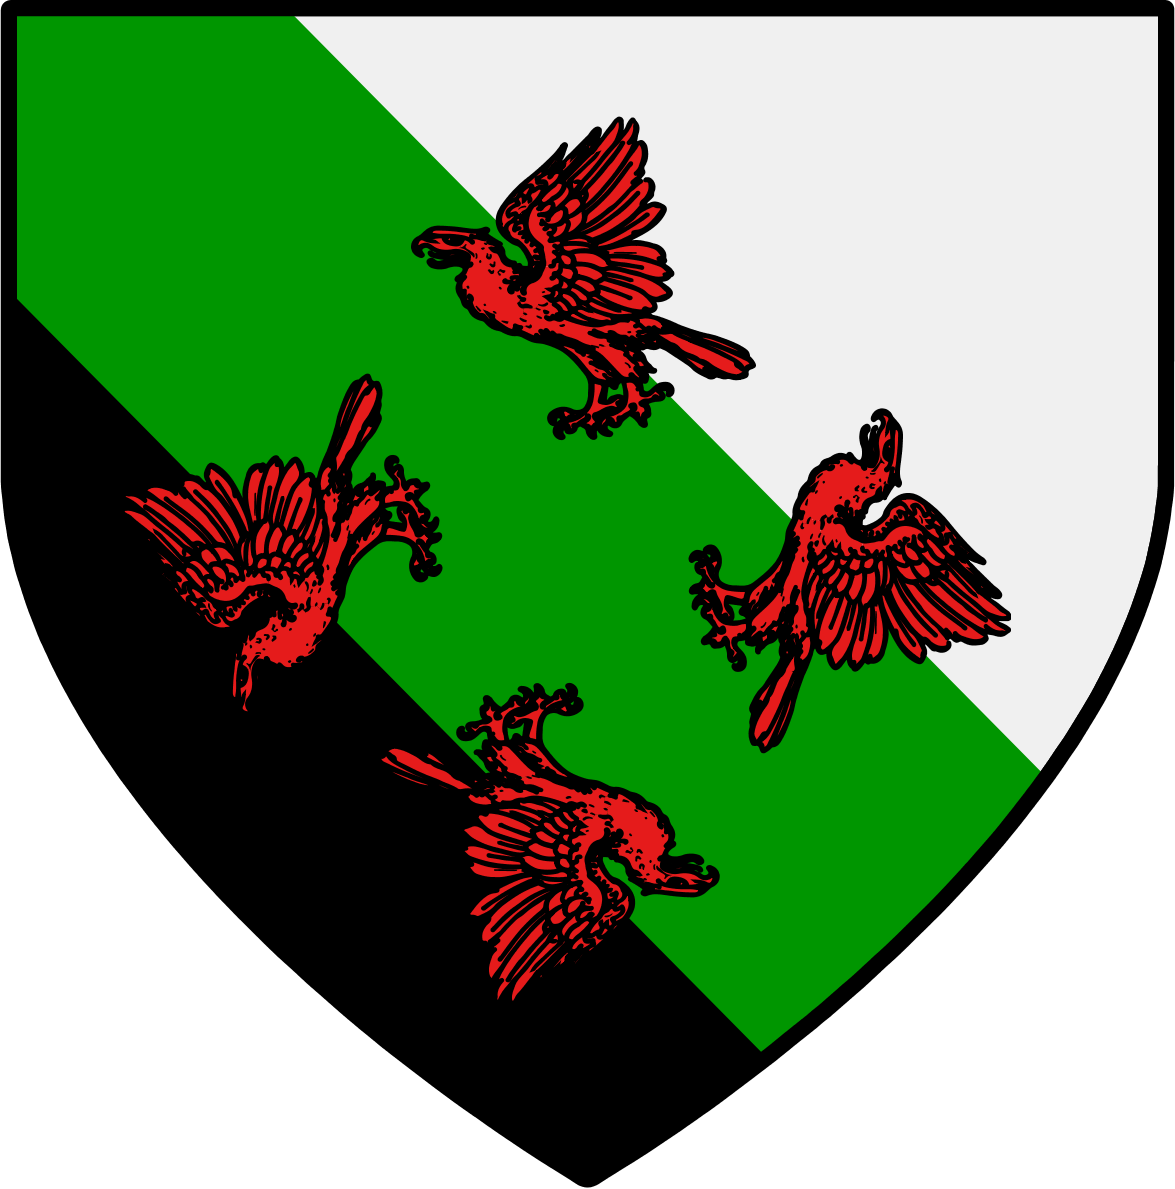 argent_a_four_eagles_chasing_gules_in_full__per_bend_sable__over_a_bend_vert.png